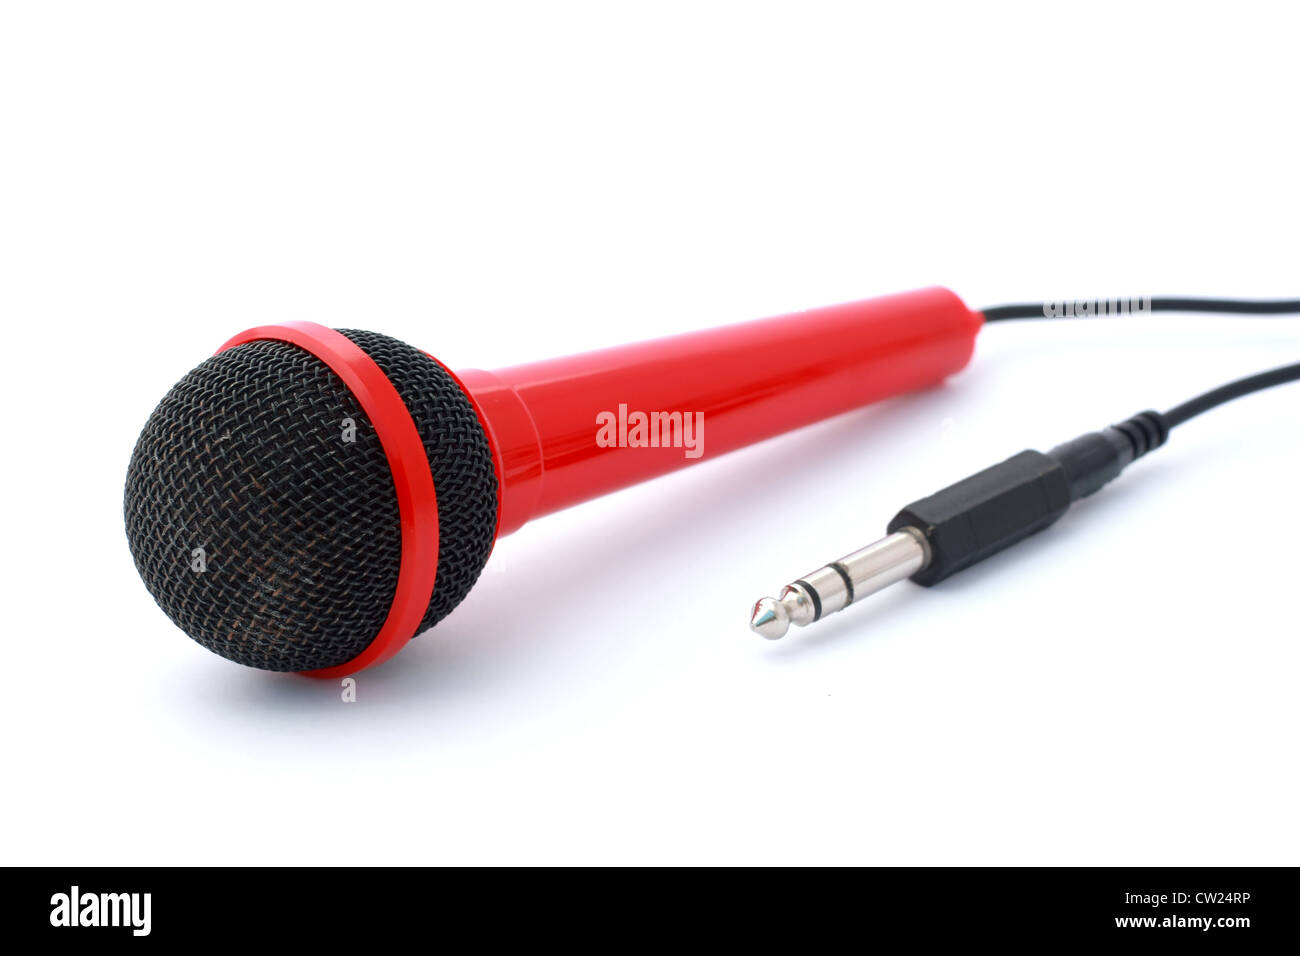 Red Microphone with plug and cable isolated on white with copyspace Stock Photo